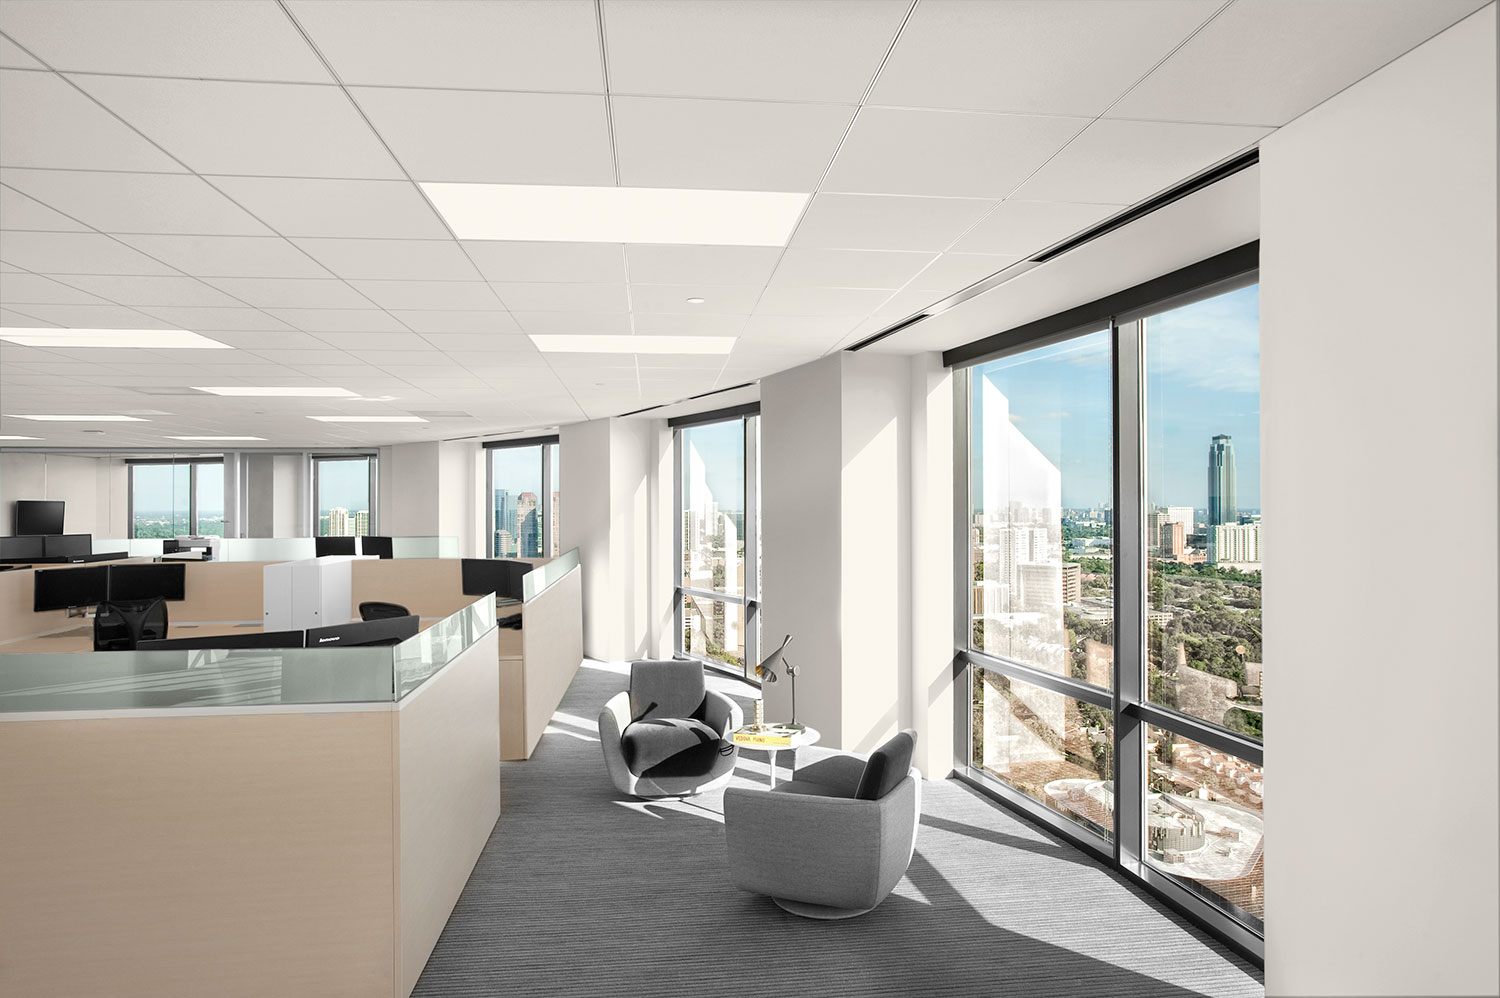 Corporate Interior Design JLT Houston Open Work Area Downtown Views Seating Window